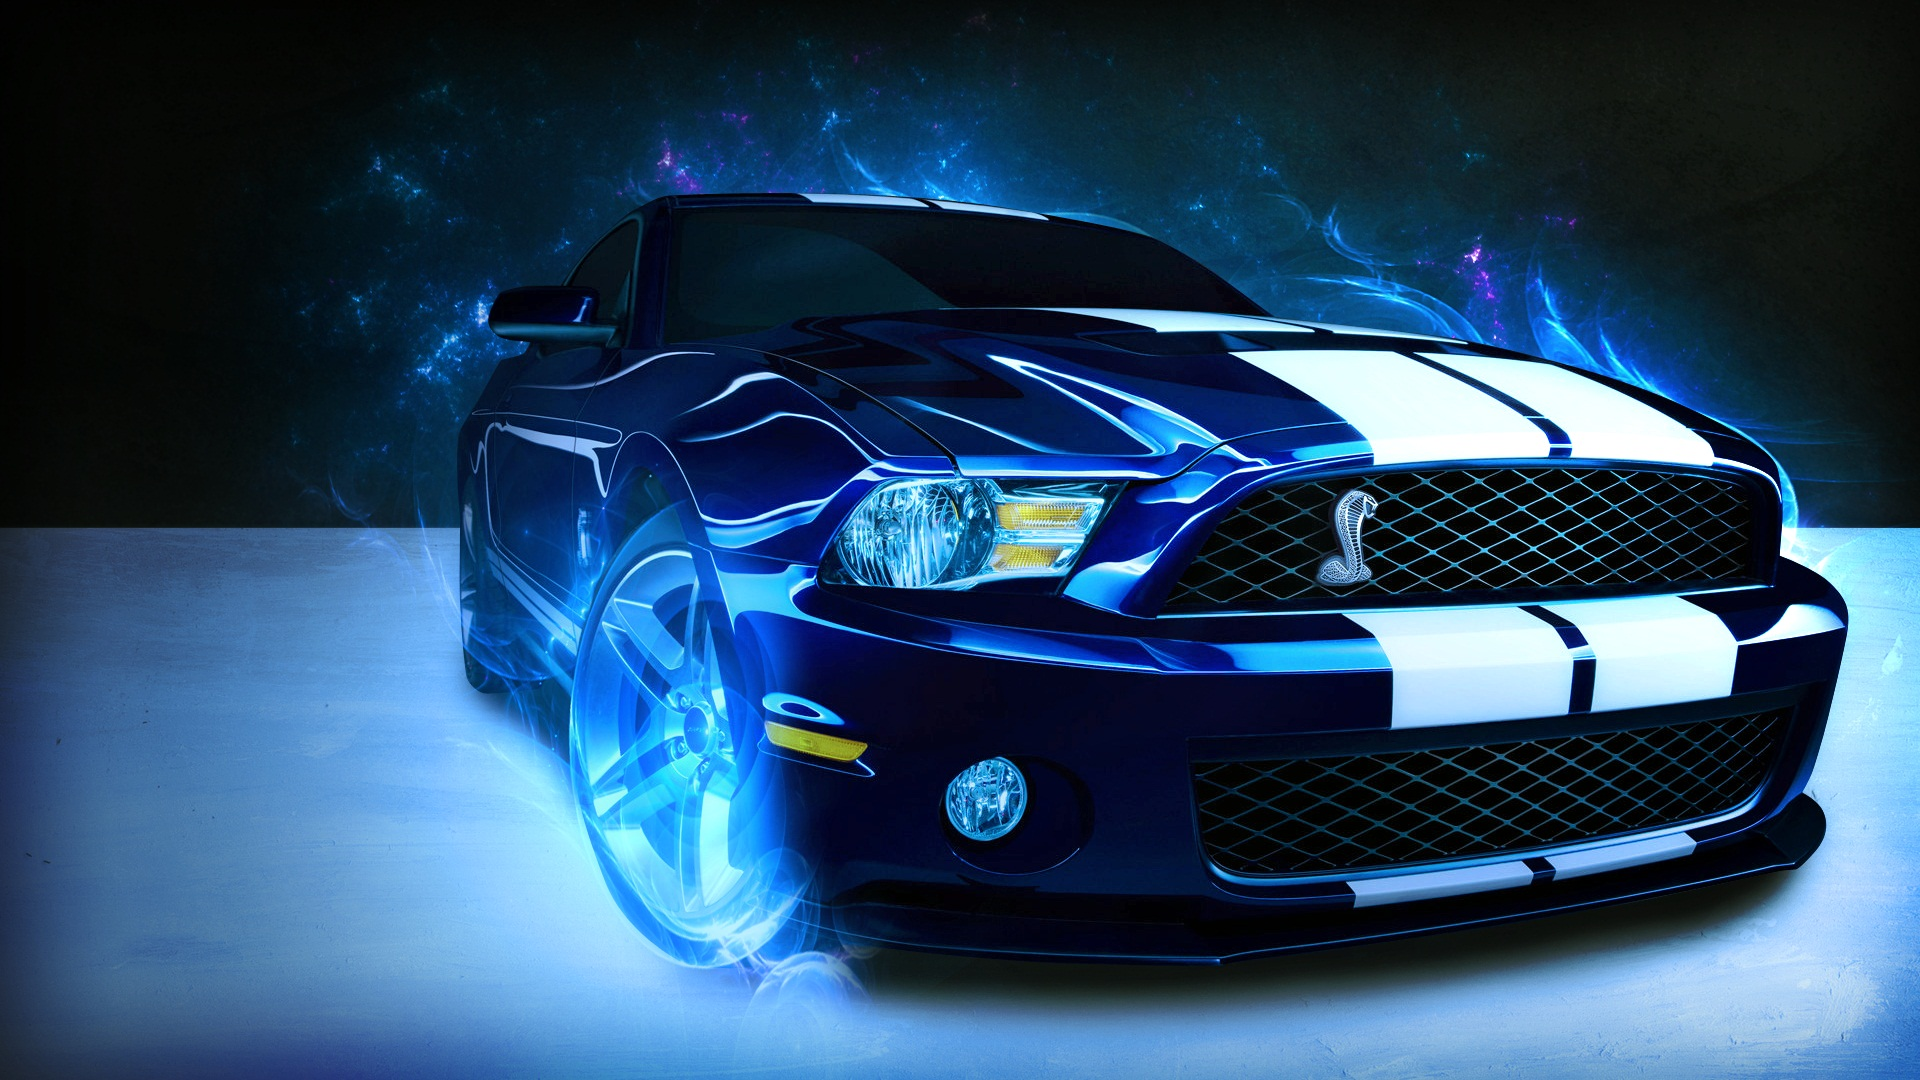 Mac Wallpaper Bugatti Vs Mustang